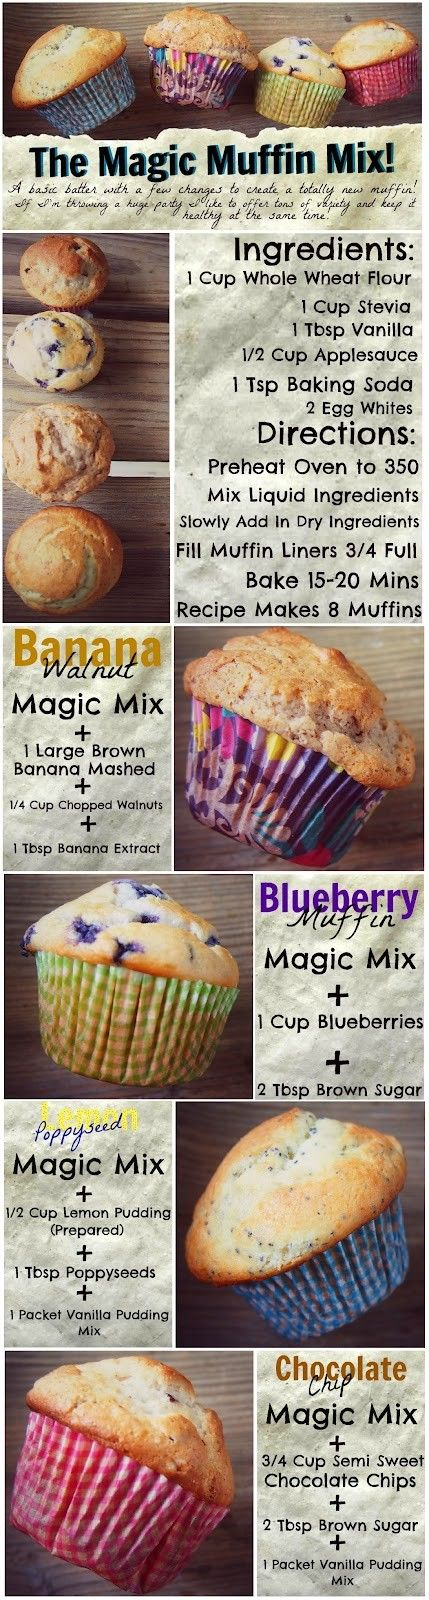 Need to make some magic muffins!